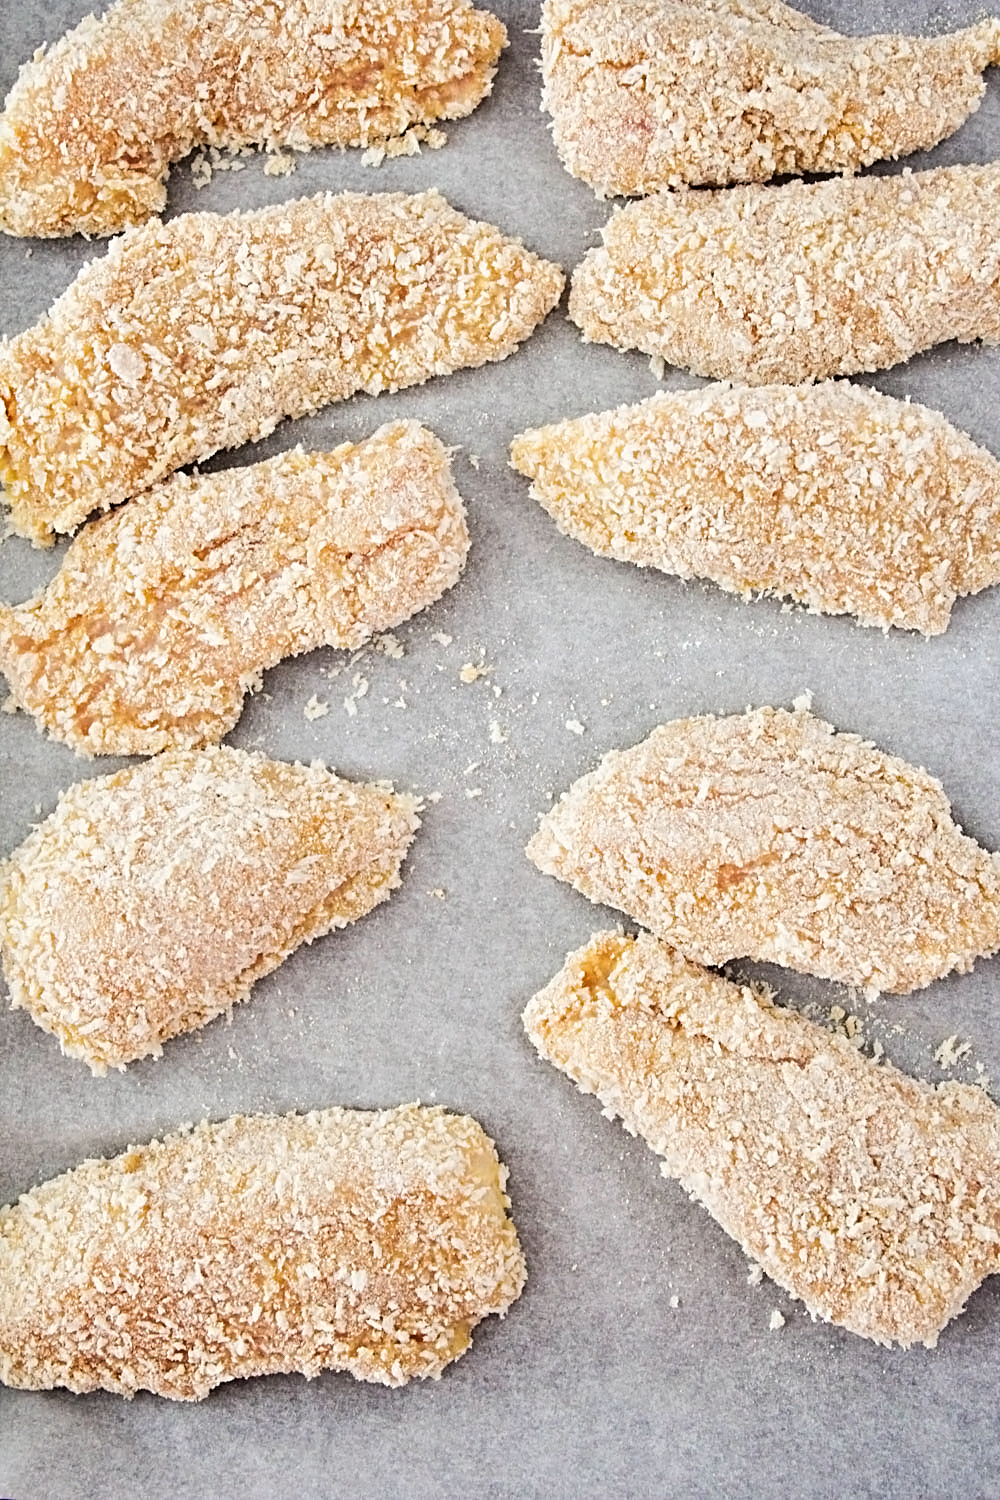 These freezer-friendly panko chicken strips are crispy and delicious, and so easy to make. Make a big batch to have on hand  for an easy meal on a busy night!